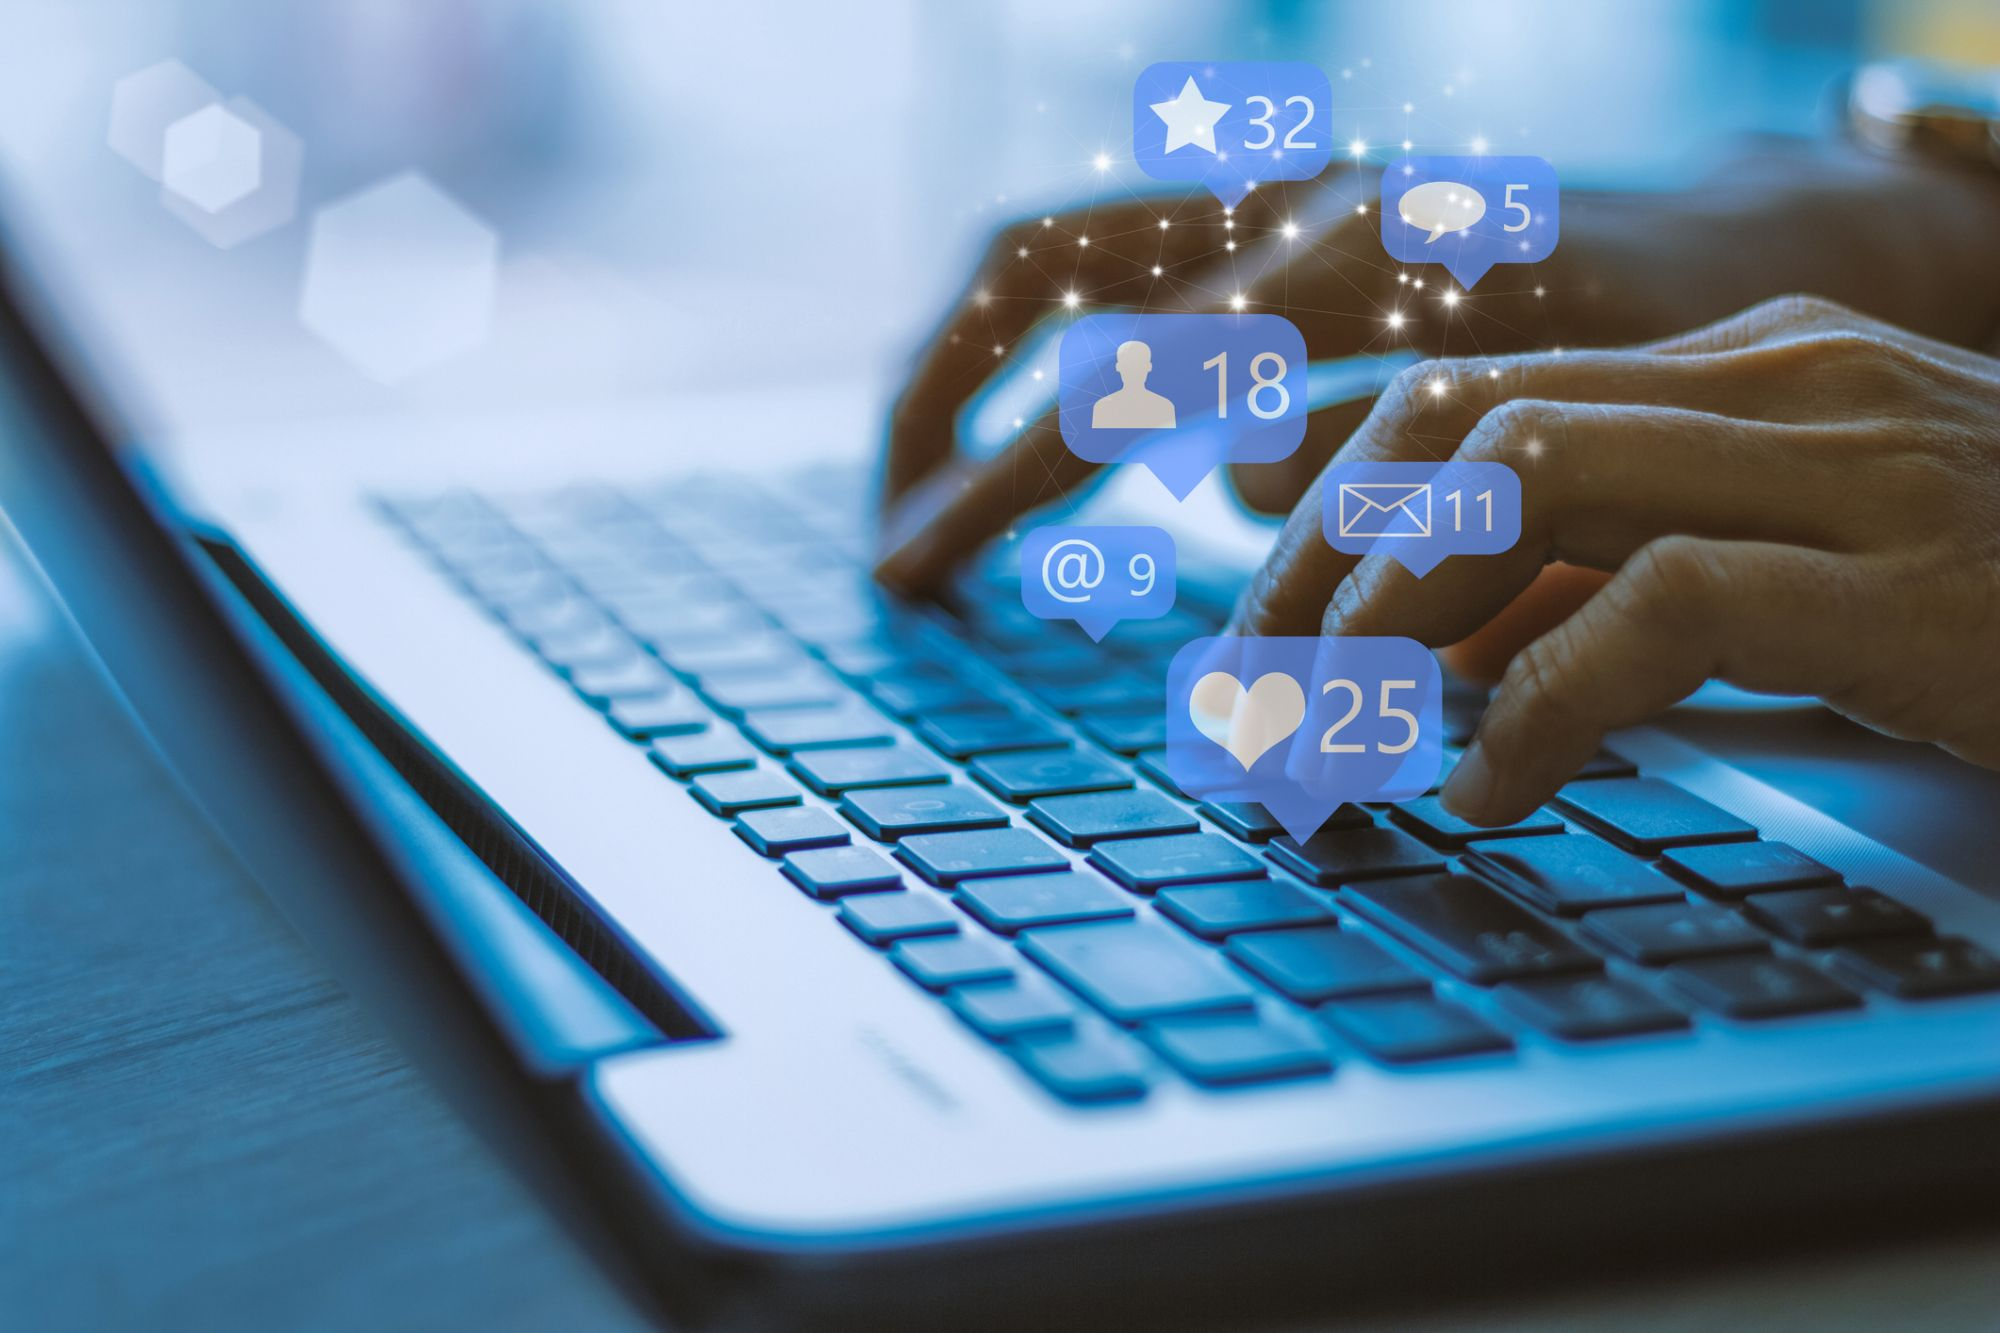 8 Simple Ways to Make Social Media Work for Your Business